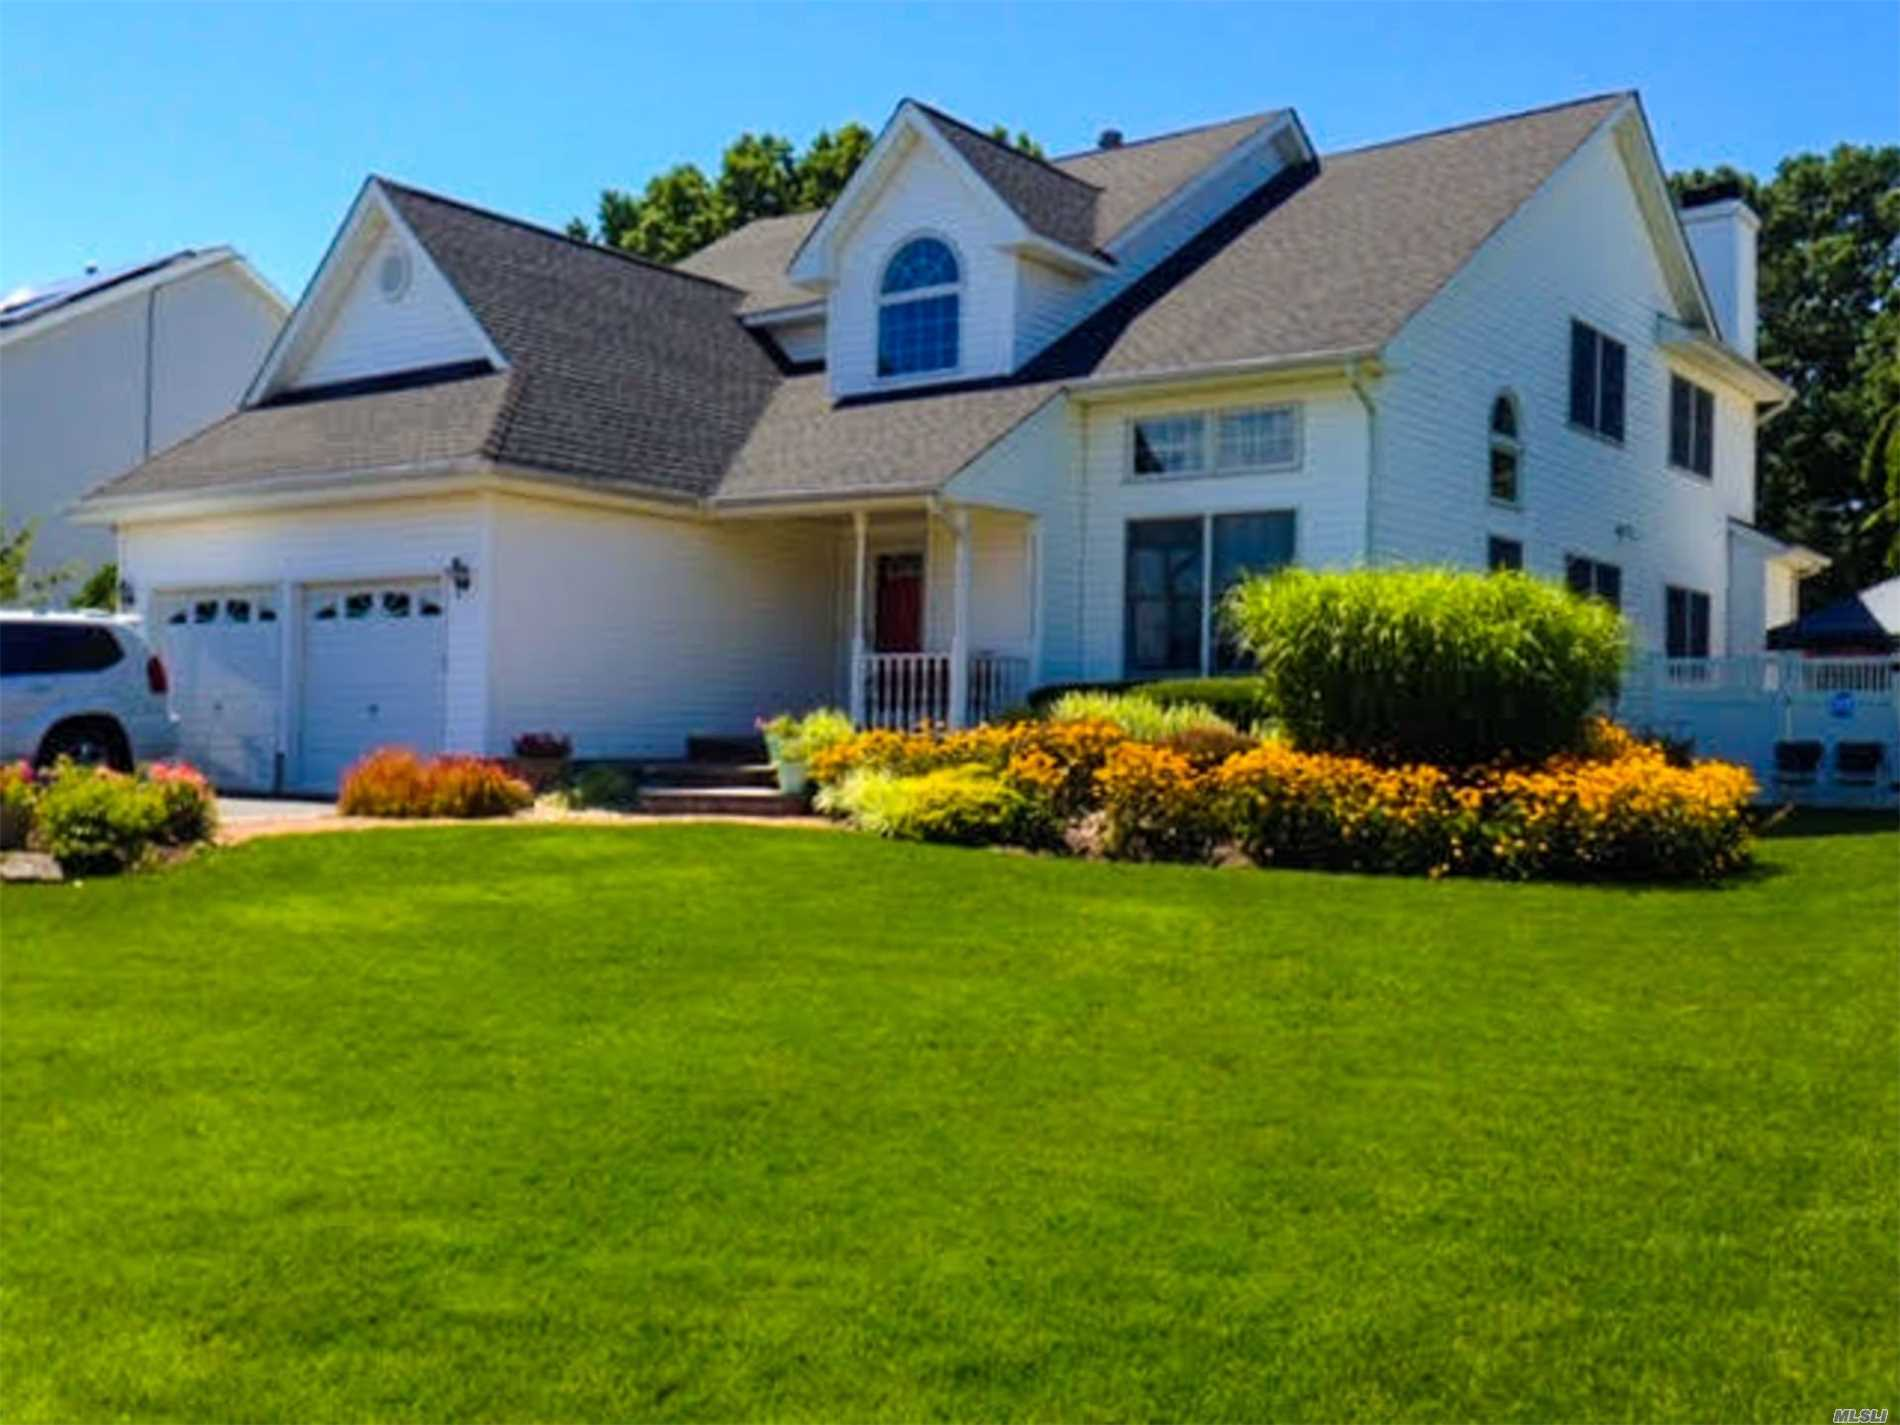 Elegant Style Home In Cul De Sac Boasts A Spacious & Open Flr Plan. Kitchen Opens To The Relaxing Family Rm W/ Fireplace & Drs Overlooking Resort Style Yard W/ In Ground Pool & Electric Pool Cover. Completing 1st Flr Is The Apt Area For Extended Family. Add'l Amenities- White Wash Maple Cabinets/Granite/ Tile Back Splash/Ss Appls/ Hw Flrs /Radiant Heat In Master Bath/Vaulted Ceilings/Crown & Chair Rails/ Master Br Fireplace/ Solar Panels/ Upd Windows/Roof/Siding..Plus Much More!